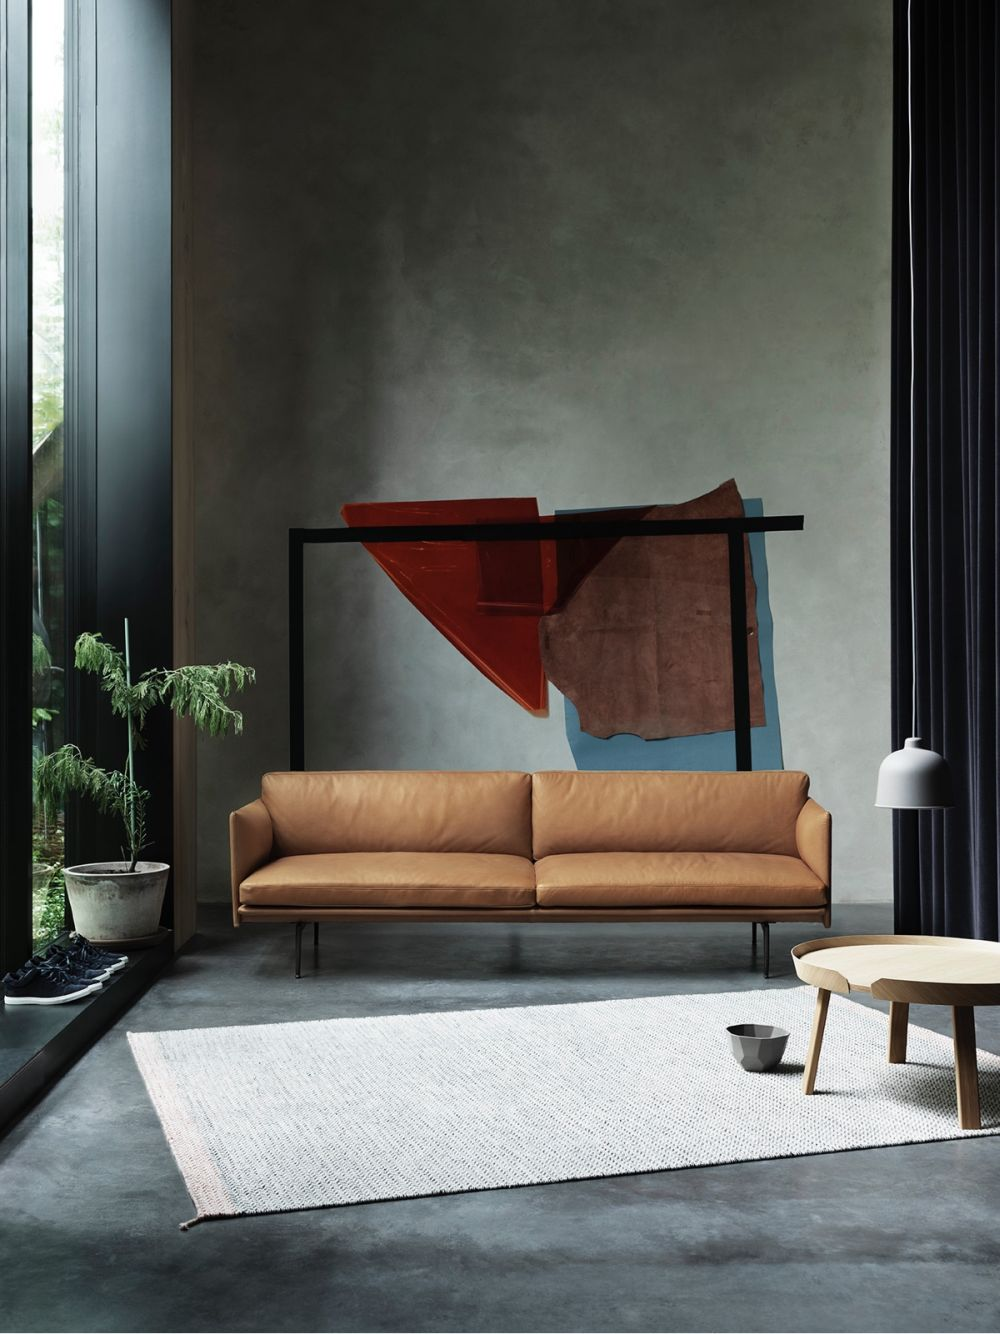 OUTLINE Muuto sofa design 6 up-to-date designs of sofas for cozy comfort